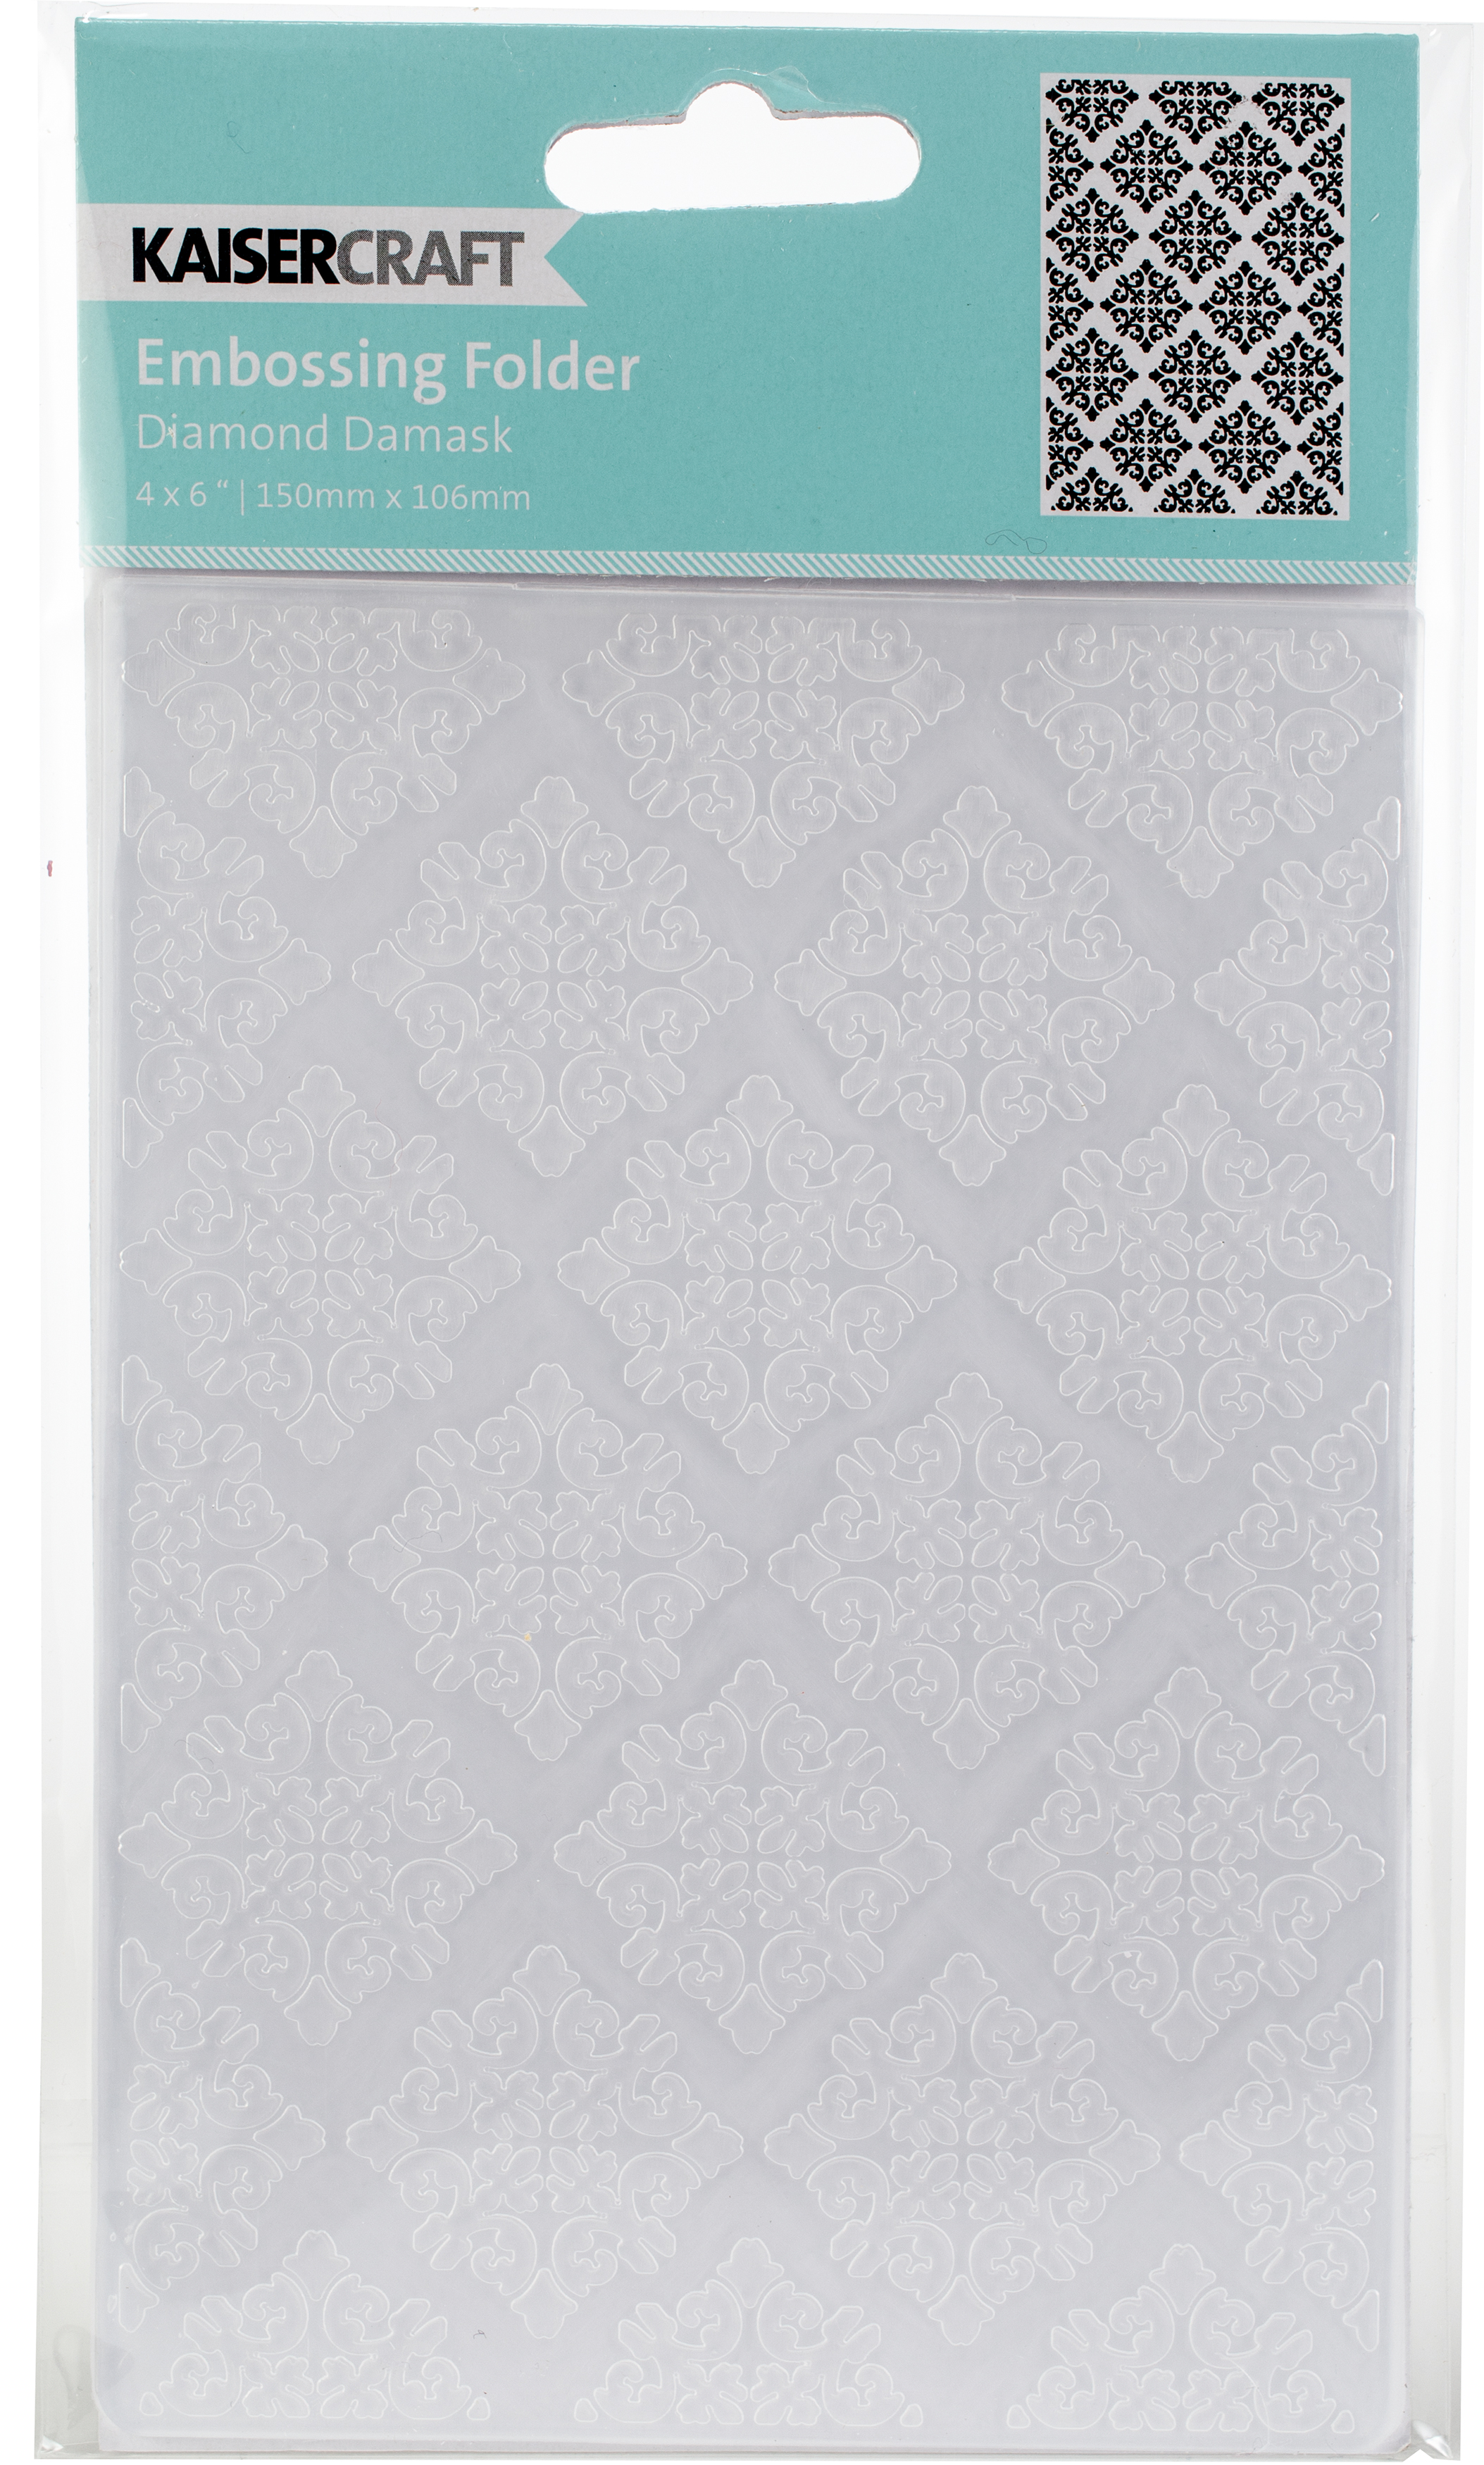 Kaisercraft Embossing Folder 4X6-Diamond Damask